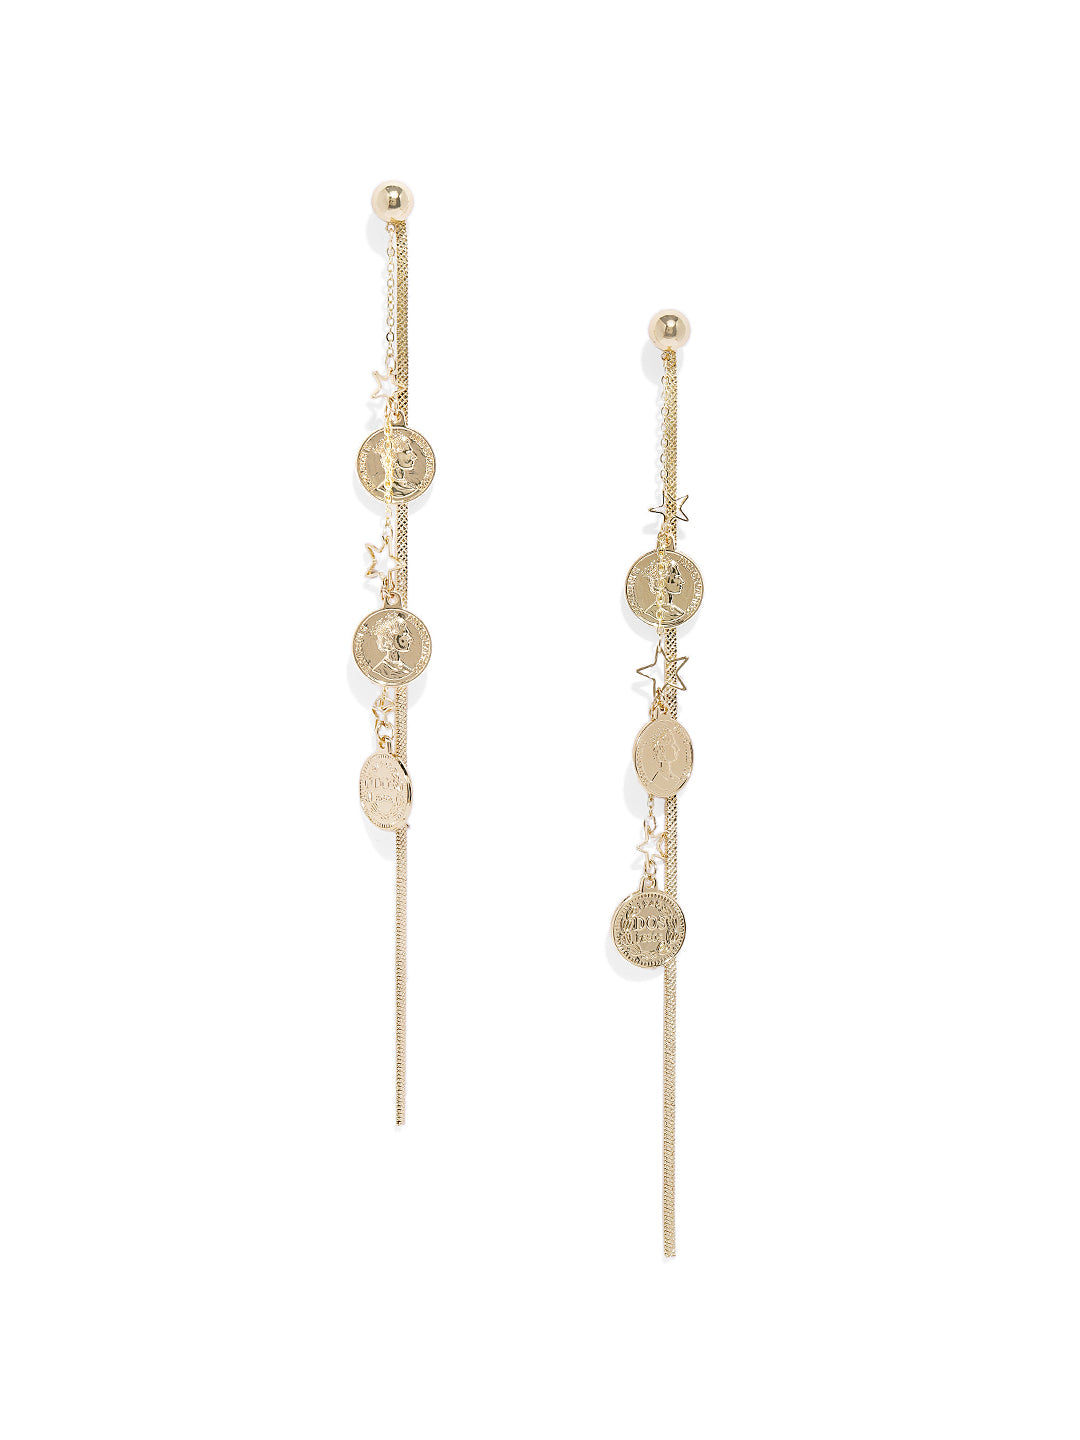 Roman Coin Long Earrings - ChicMela